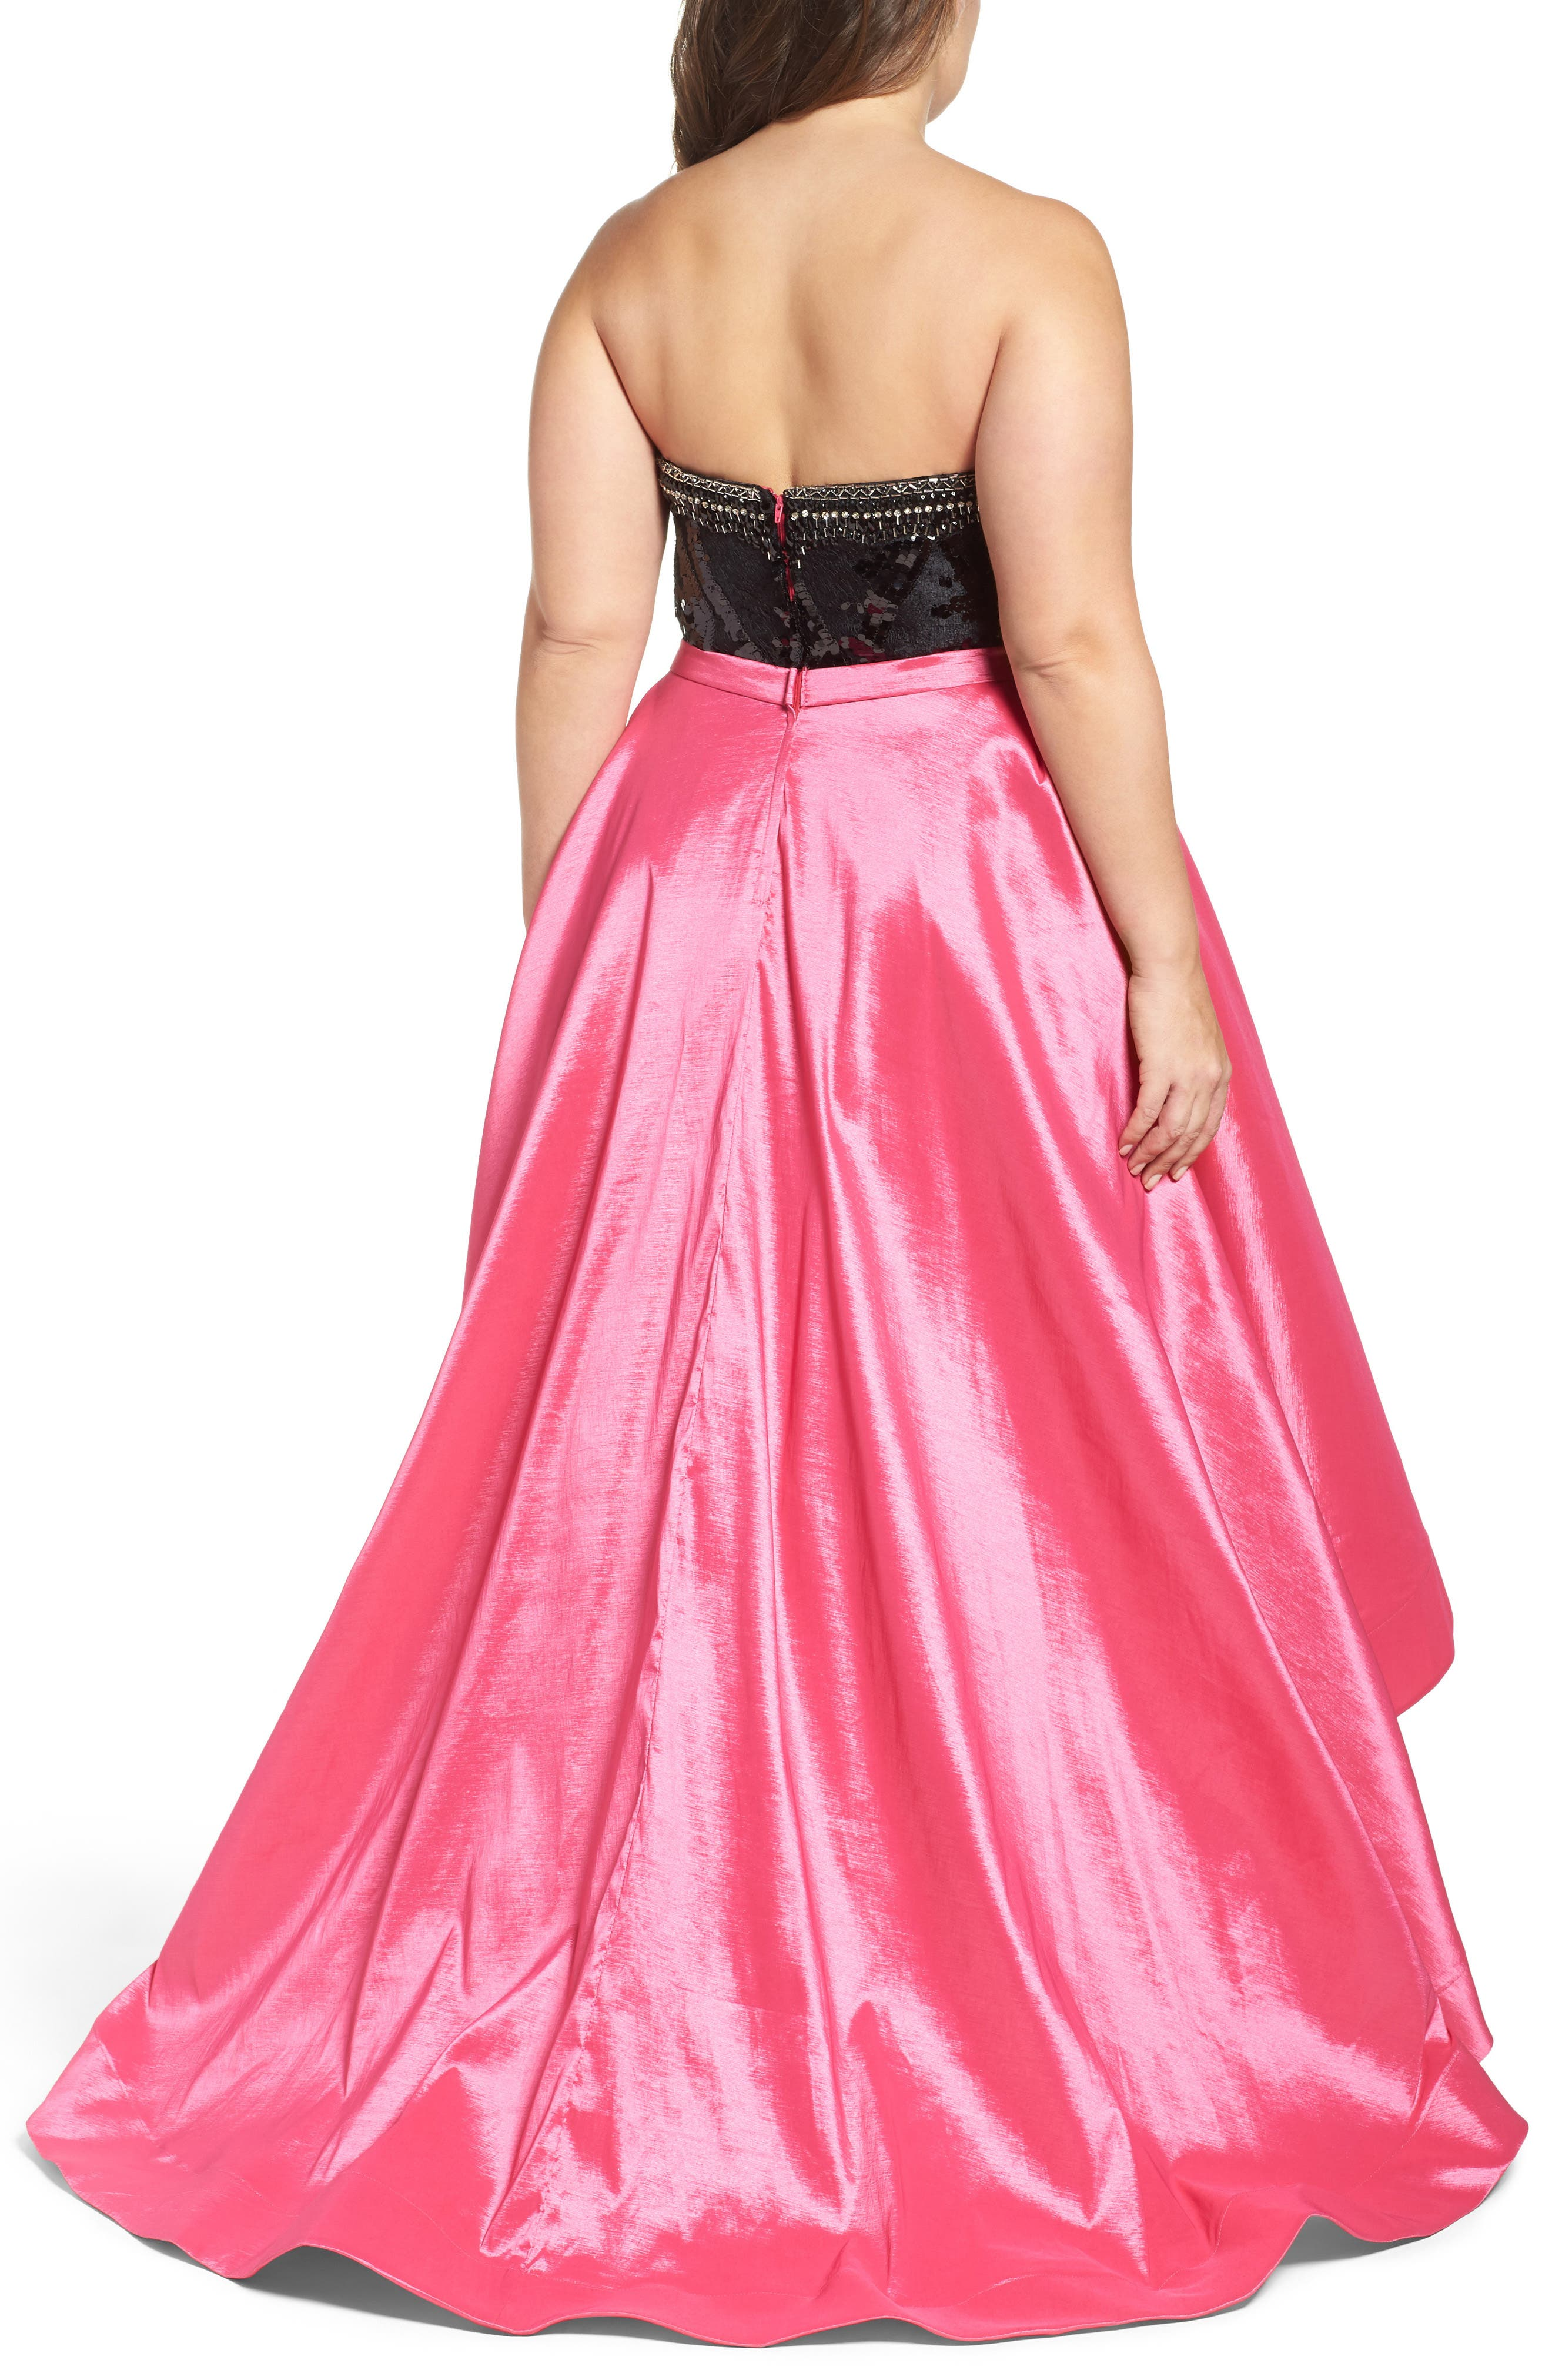 Embellished Lace & Taffeta Strapless High/Low Gown,                             Alternate thumbnail 2, color,                             Hot Pink/ Black